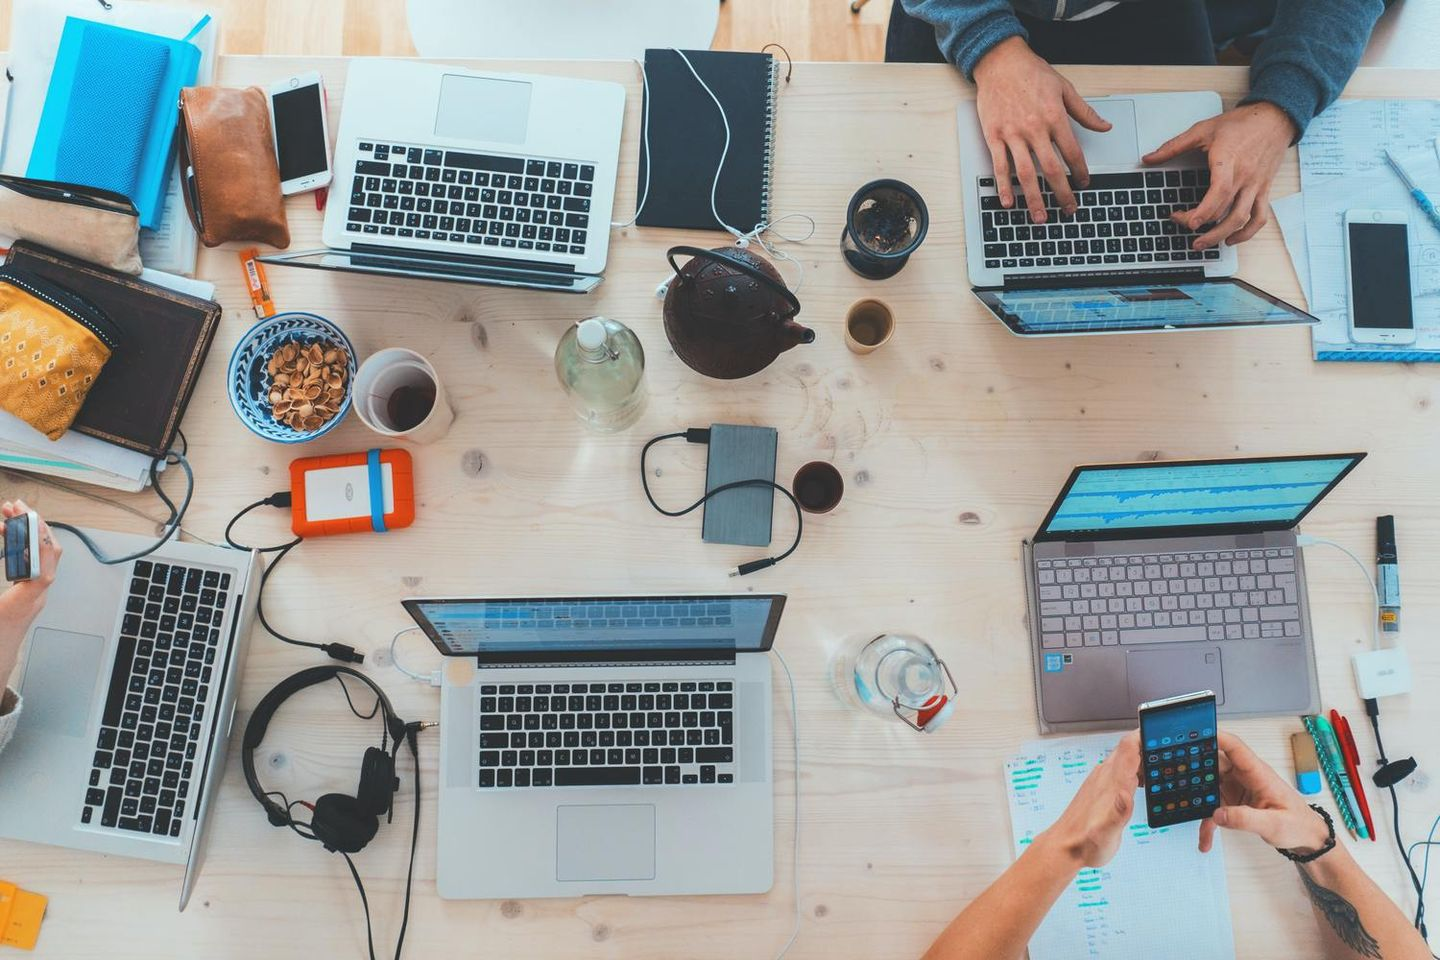 Collaborating with other freelancers can be a big part of growing your business